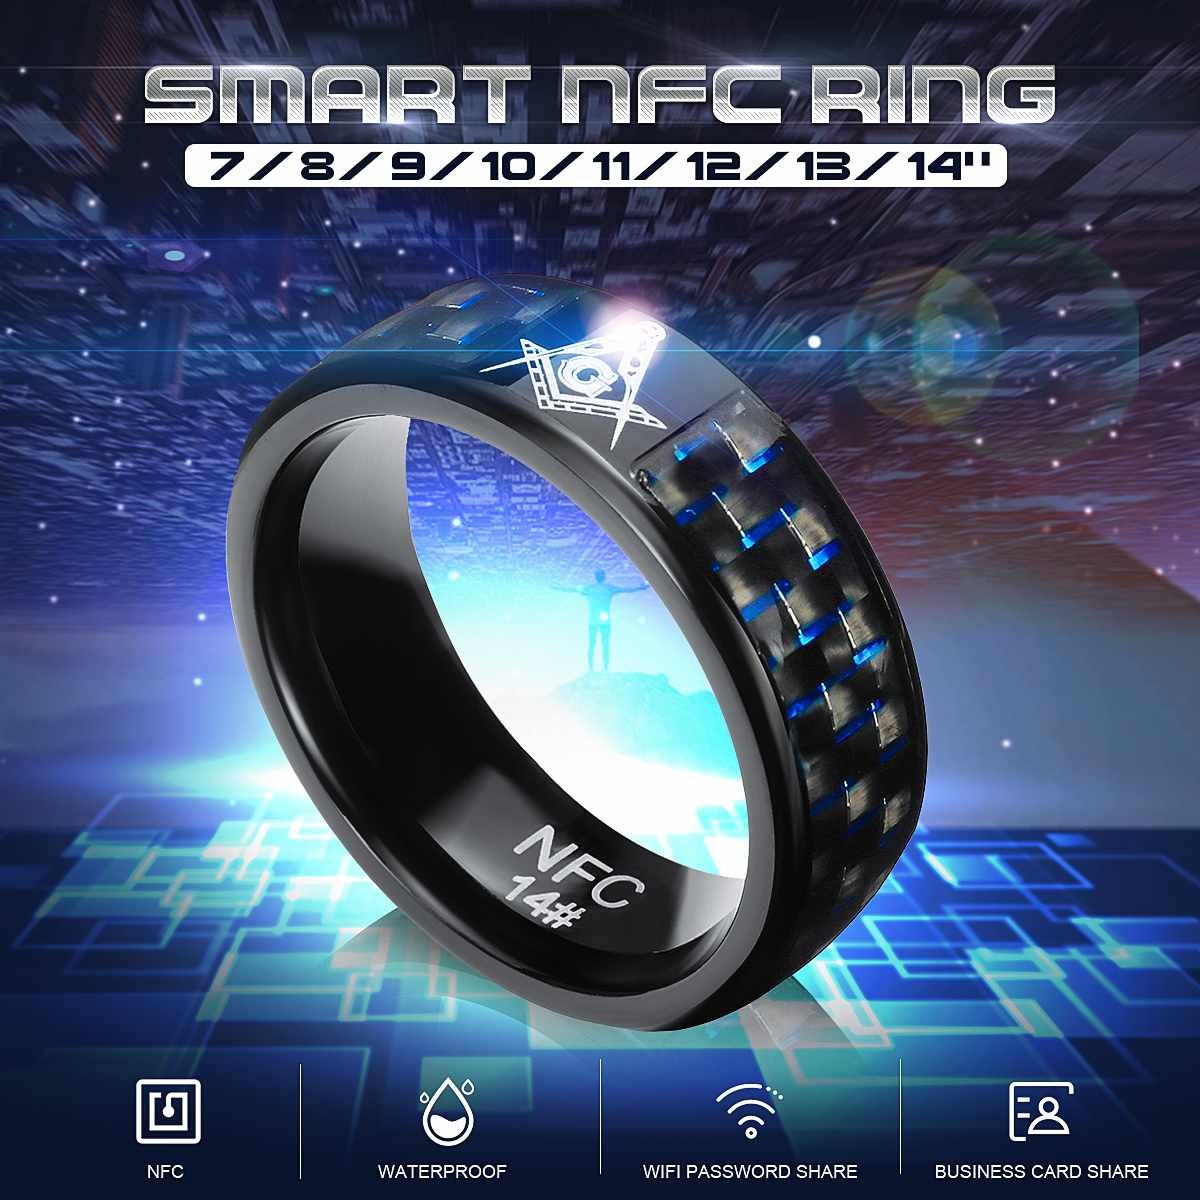 2020 new 7/8/9/10/11/12/13/14 Fashion Elegant Jewelry Rings Wear Magic NFC Smart Ring for ios Android windows Mobile Phone image